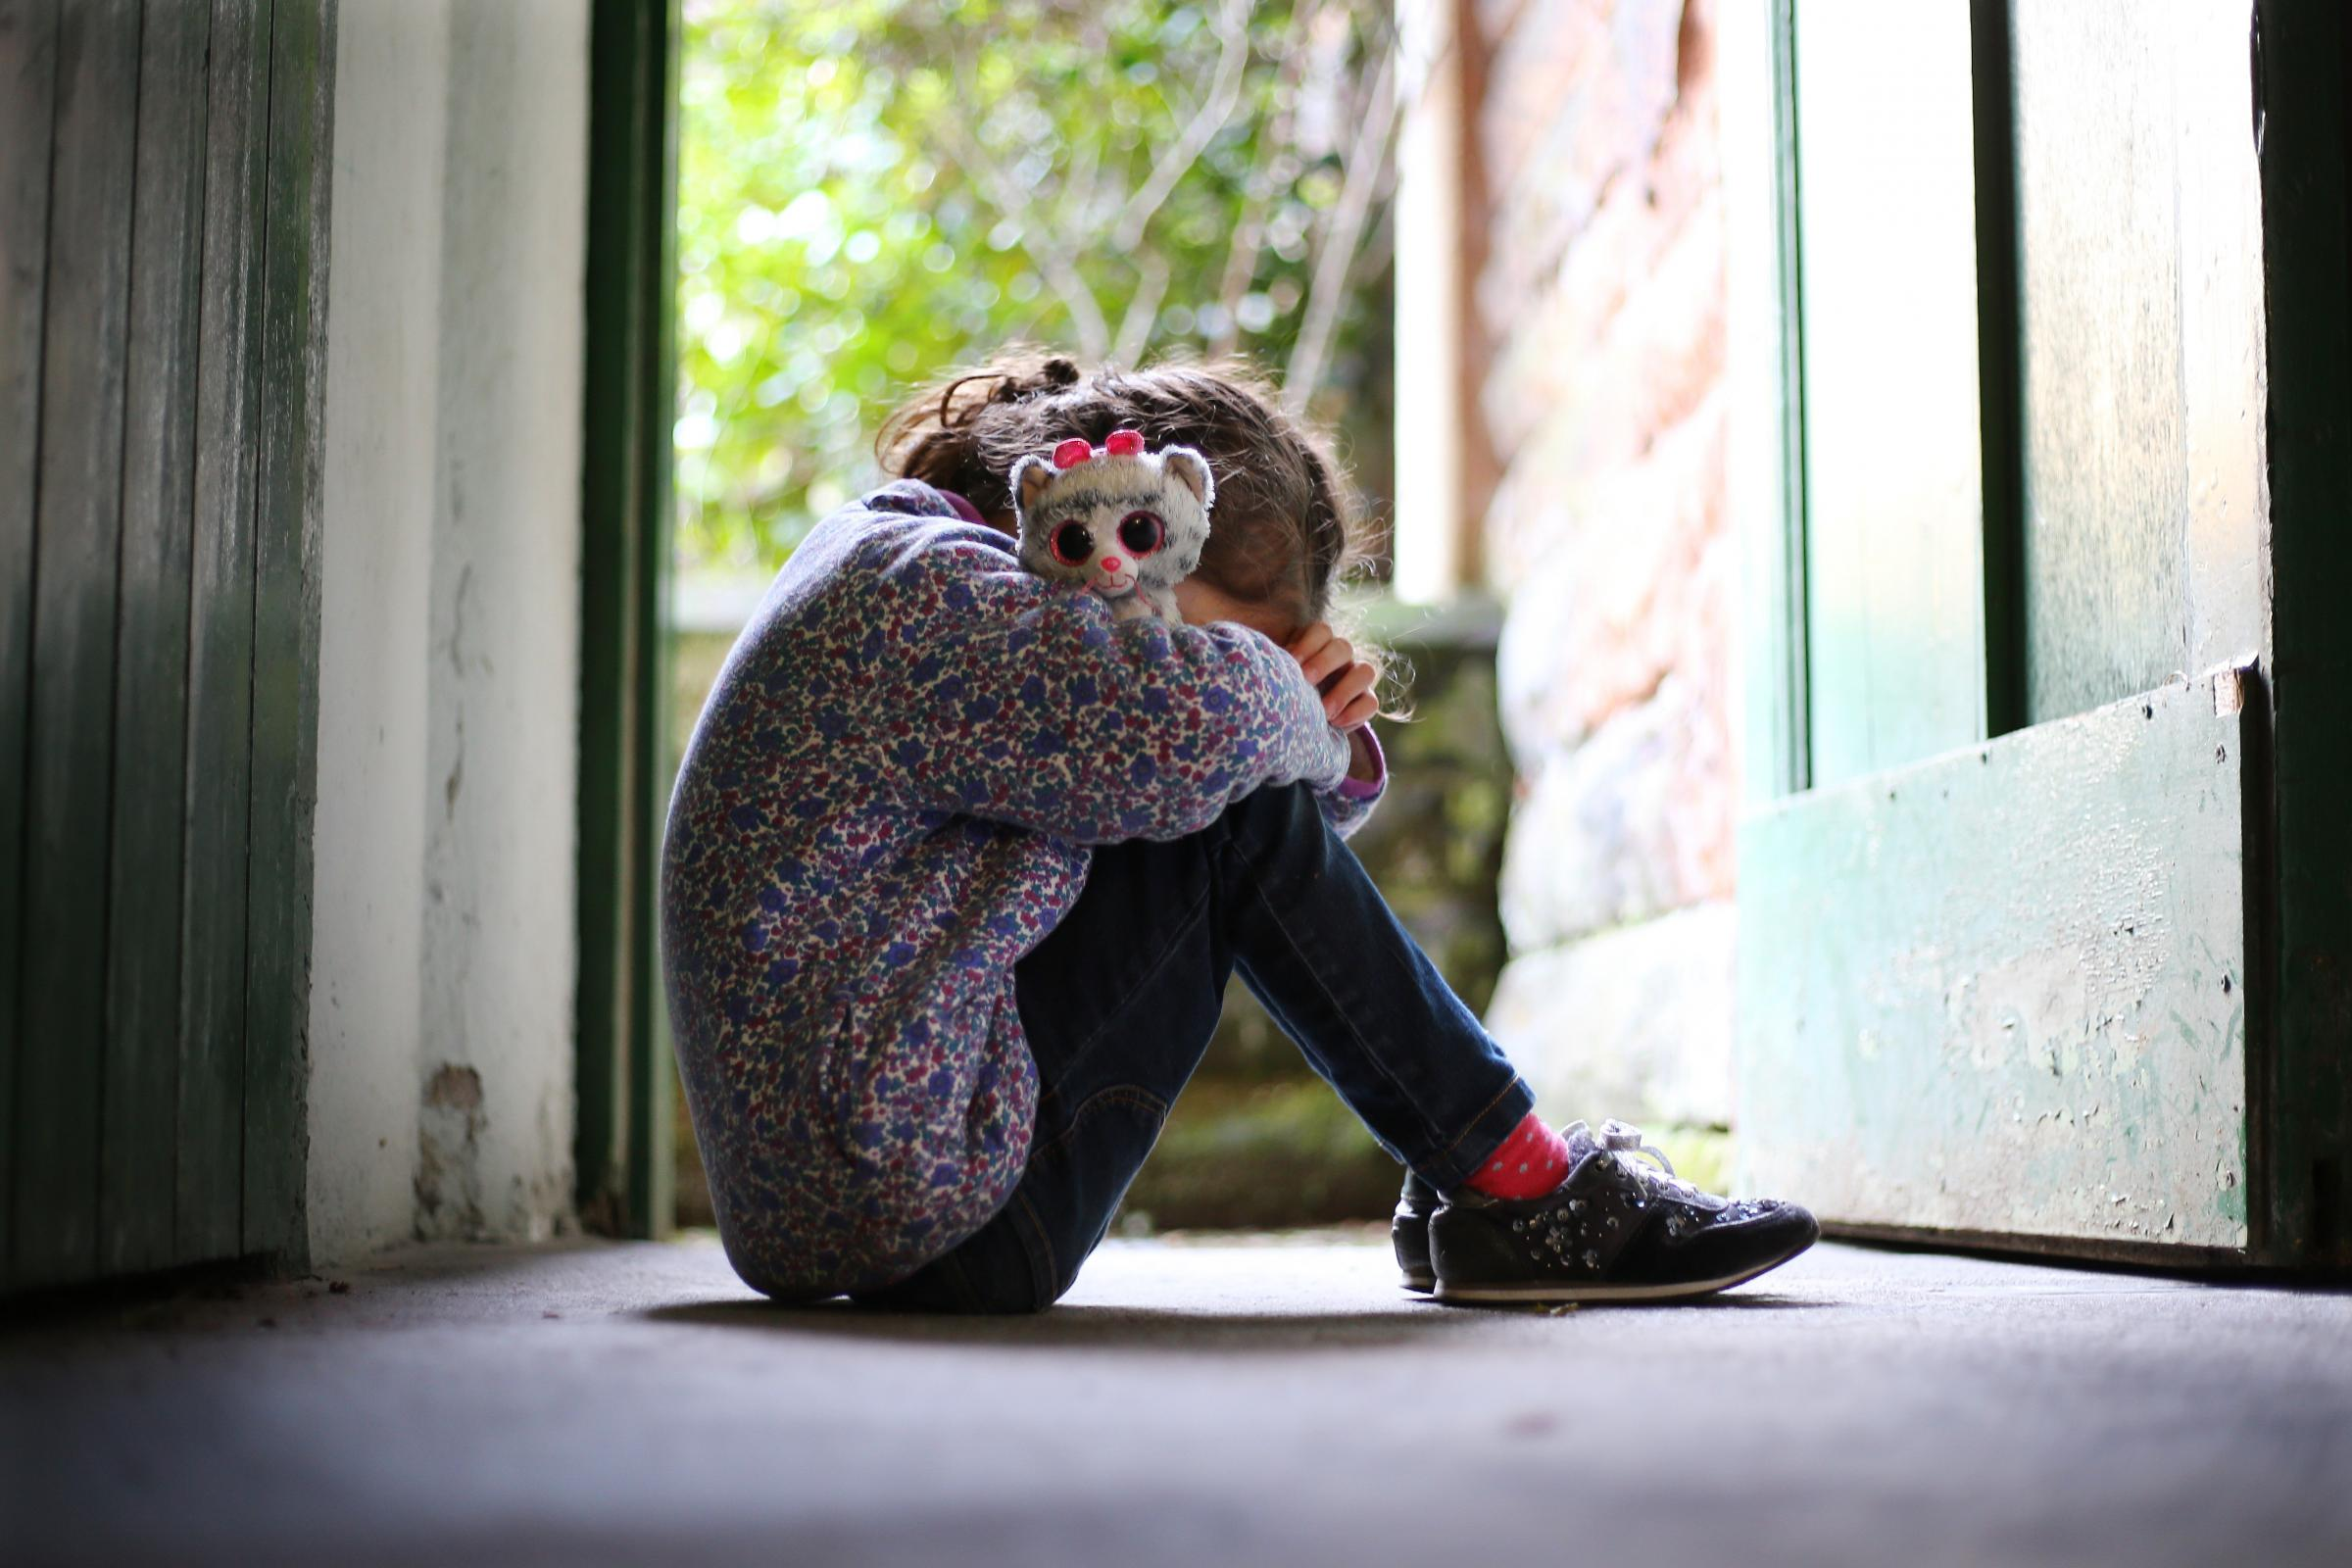 Action on childhood trauma 'could help solve drug death crisis'